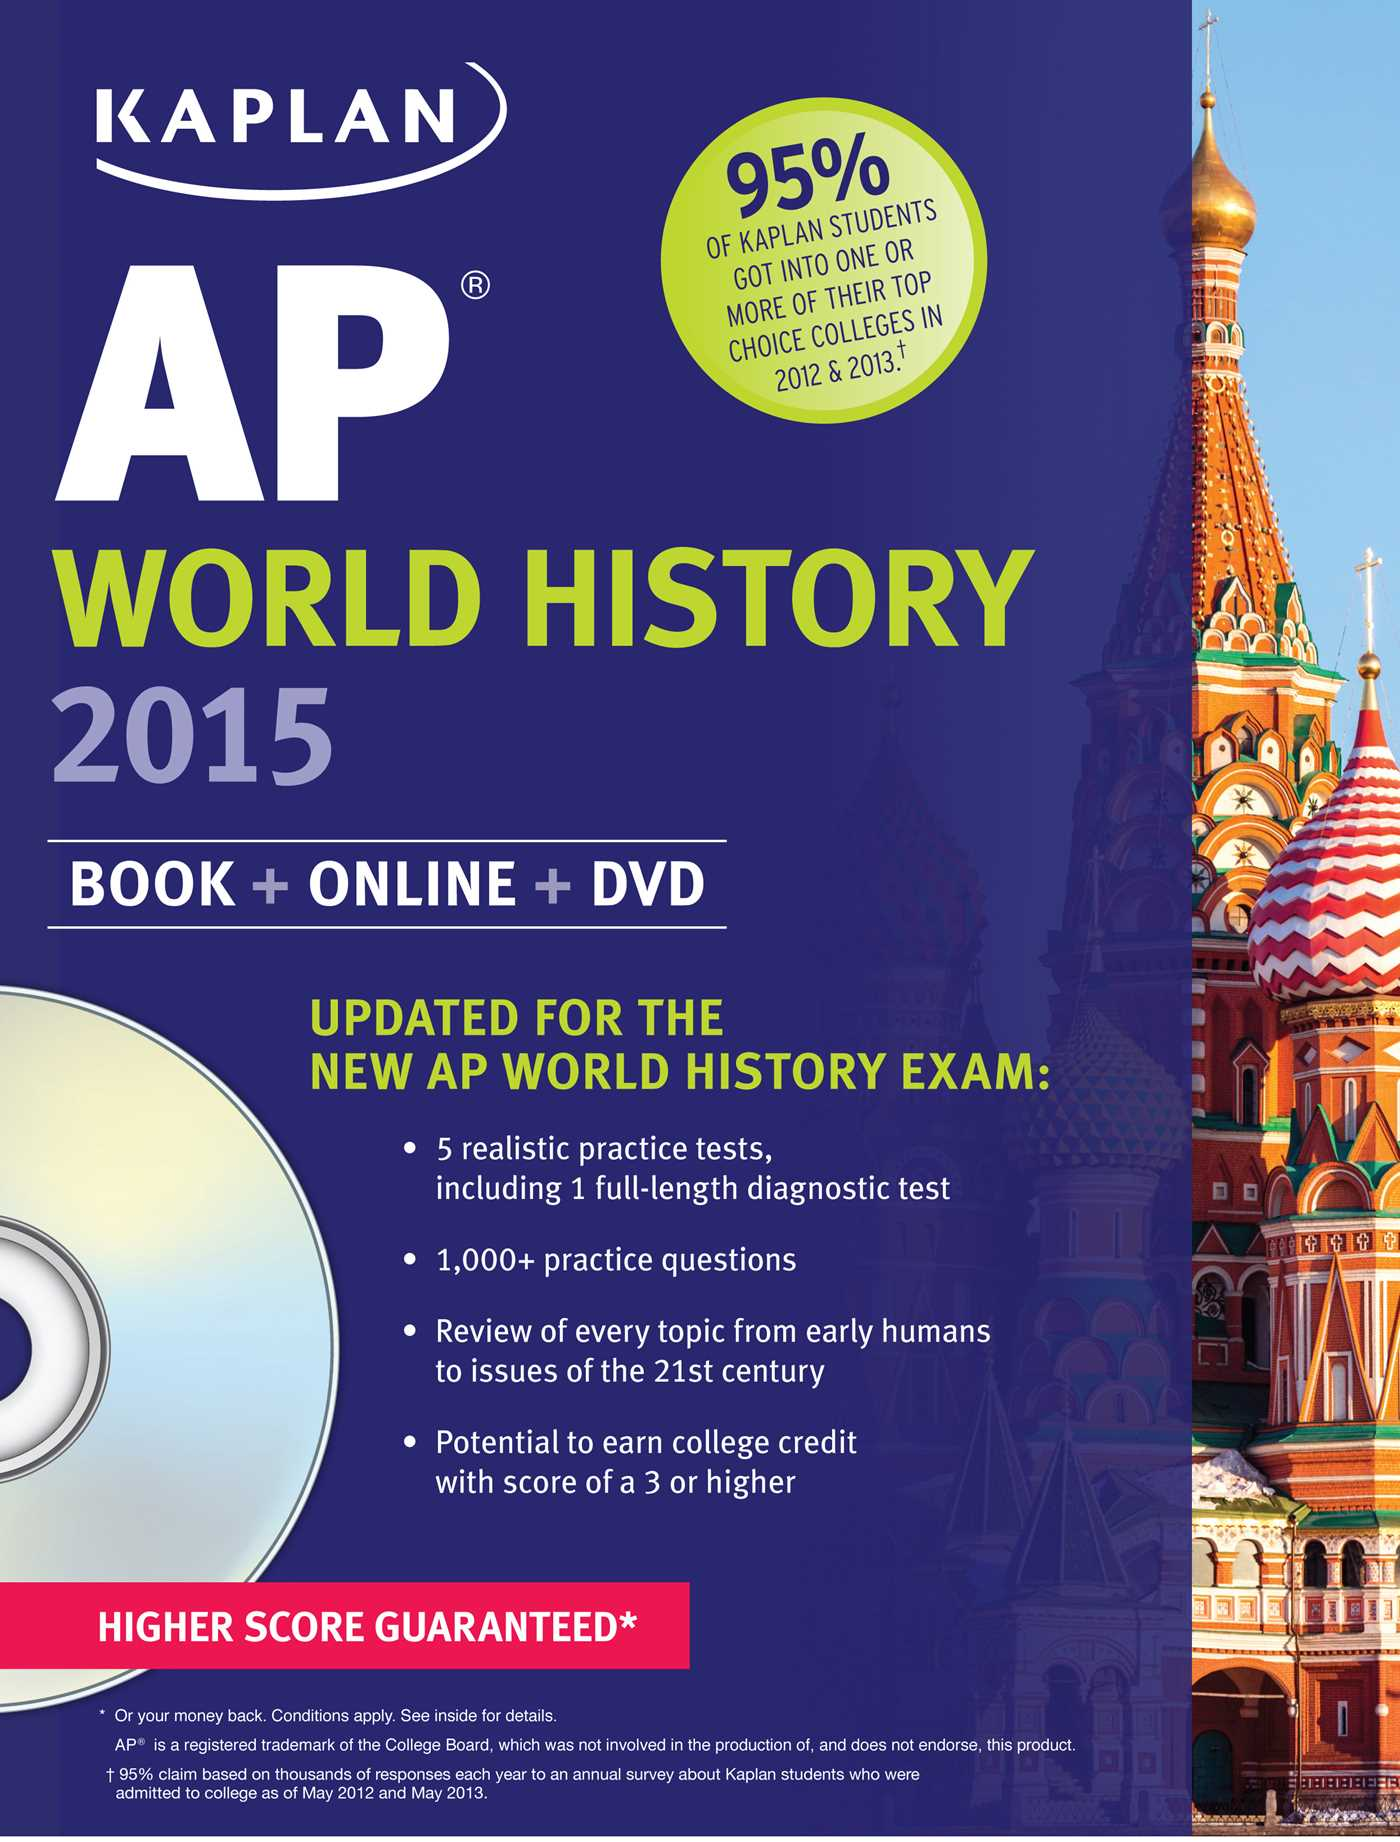 Kaplan-ap-world-history-2015-9781618652645_hr